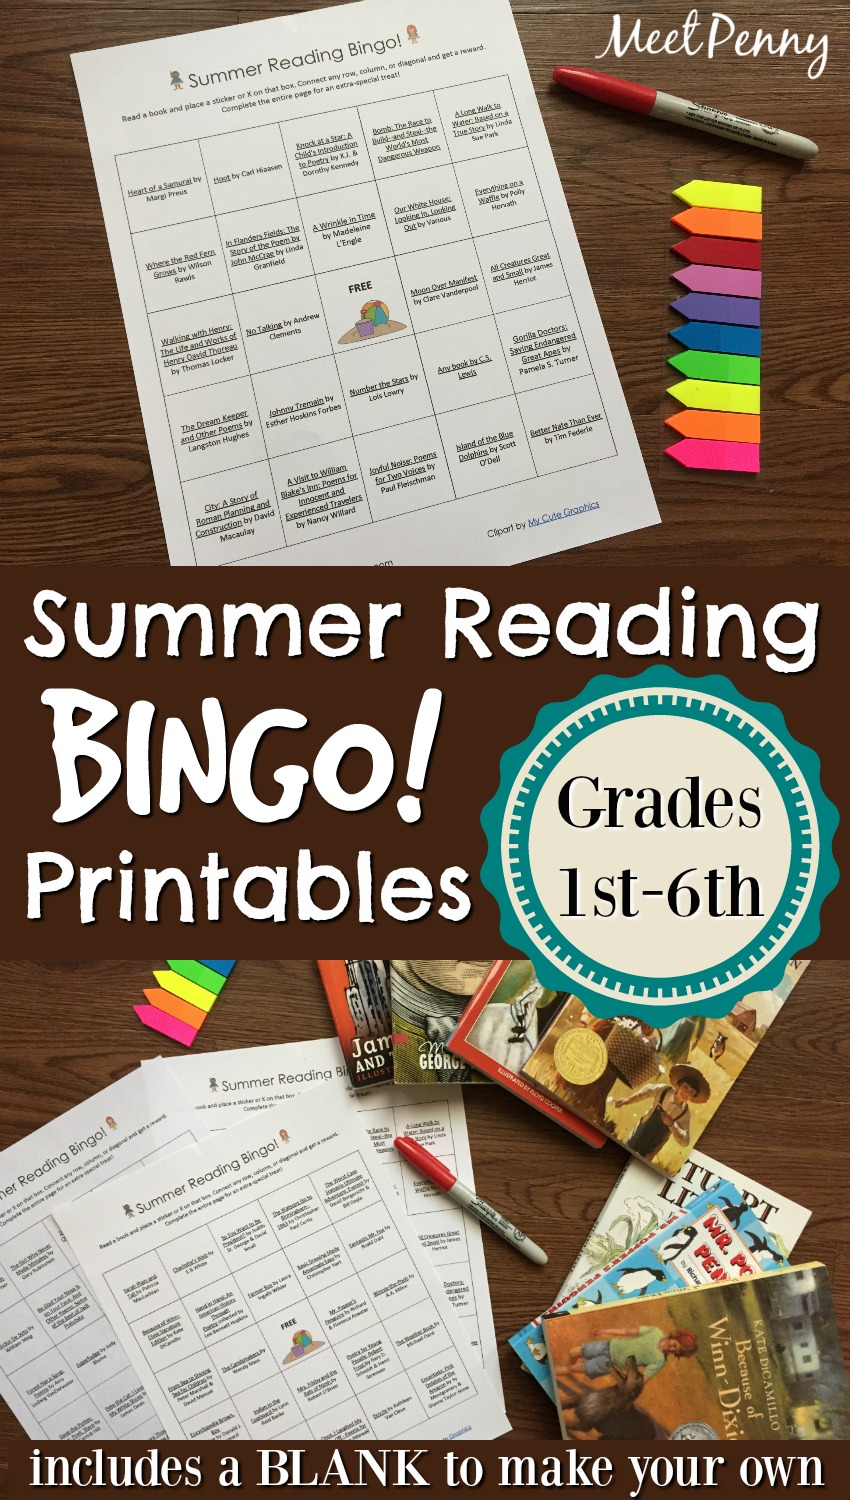 Summer Reading Bingo Printable (1st through 6th grades)